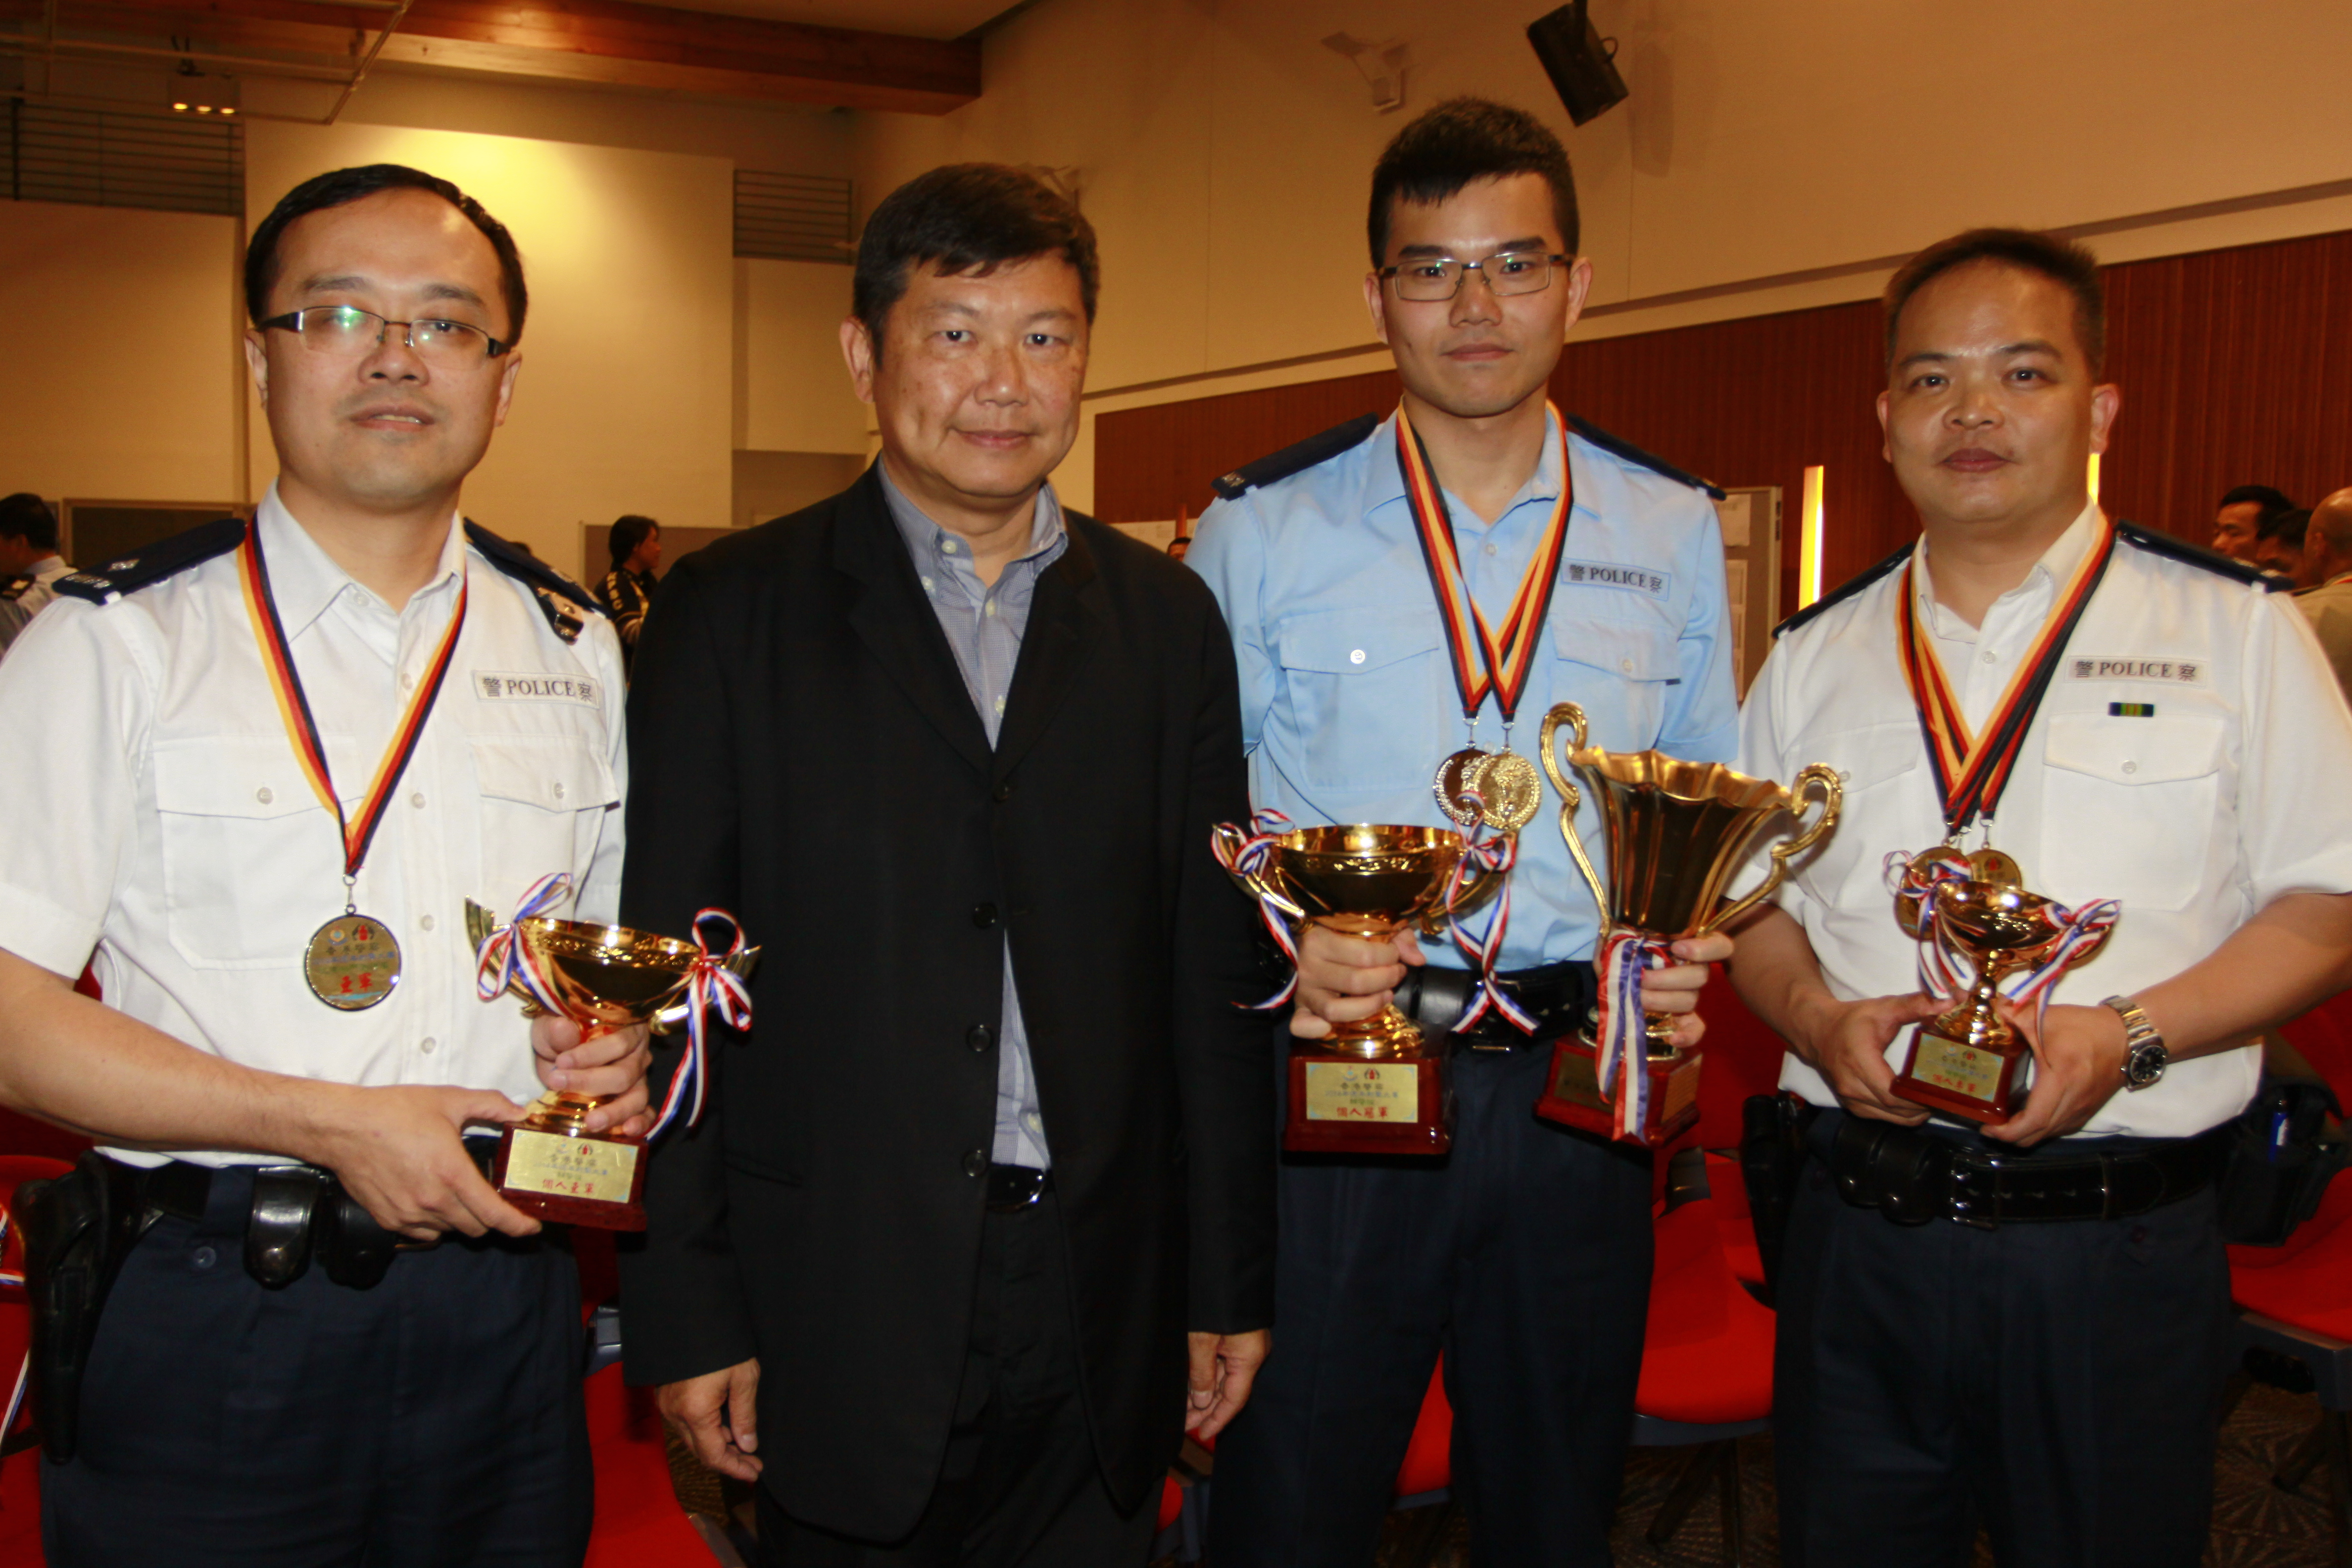 Auxiliary Police Individual Prizes